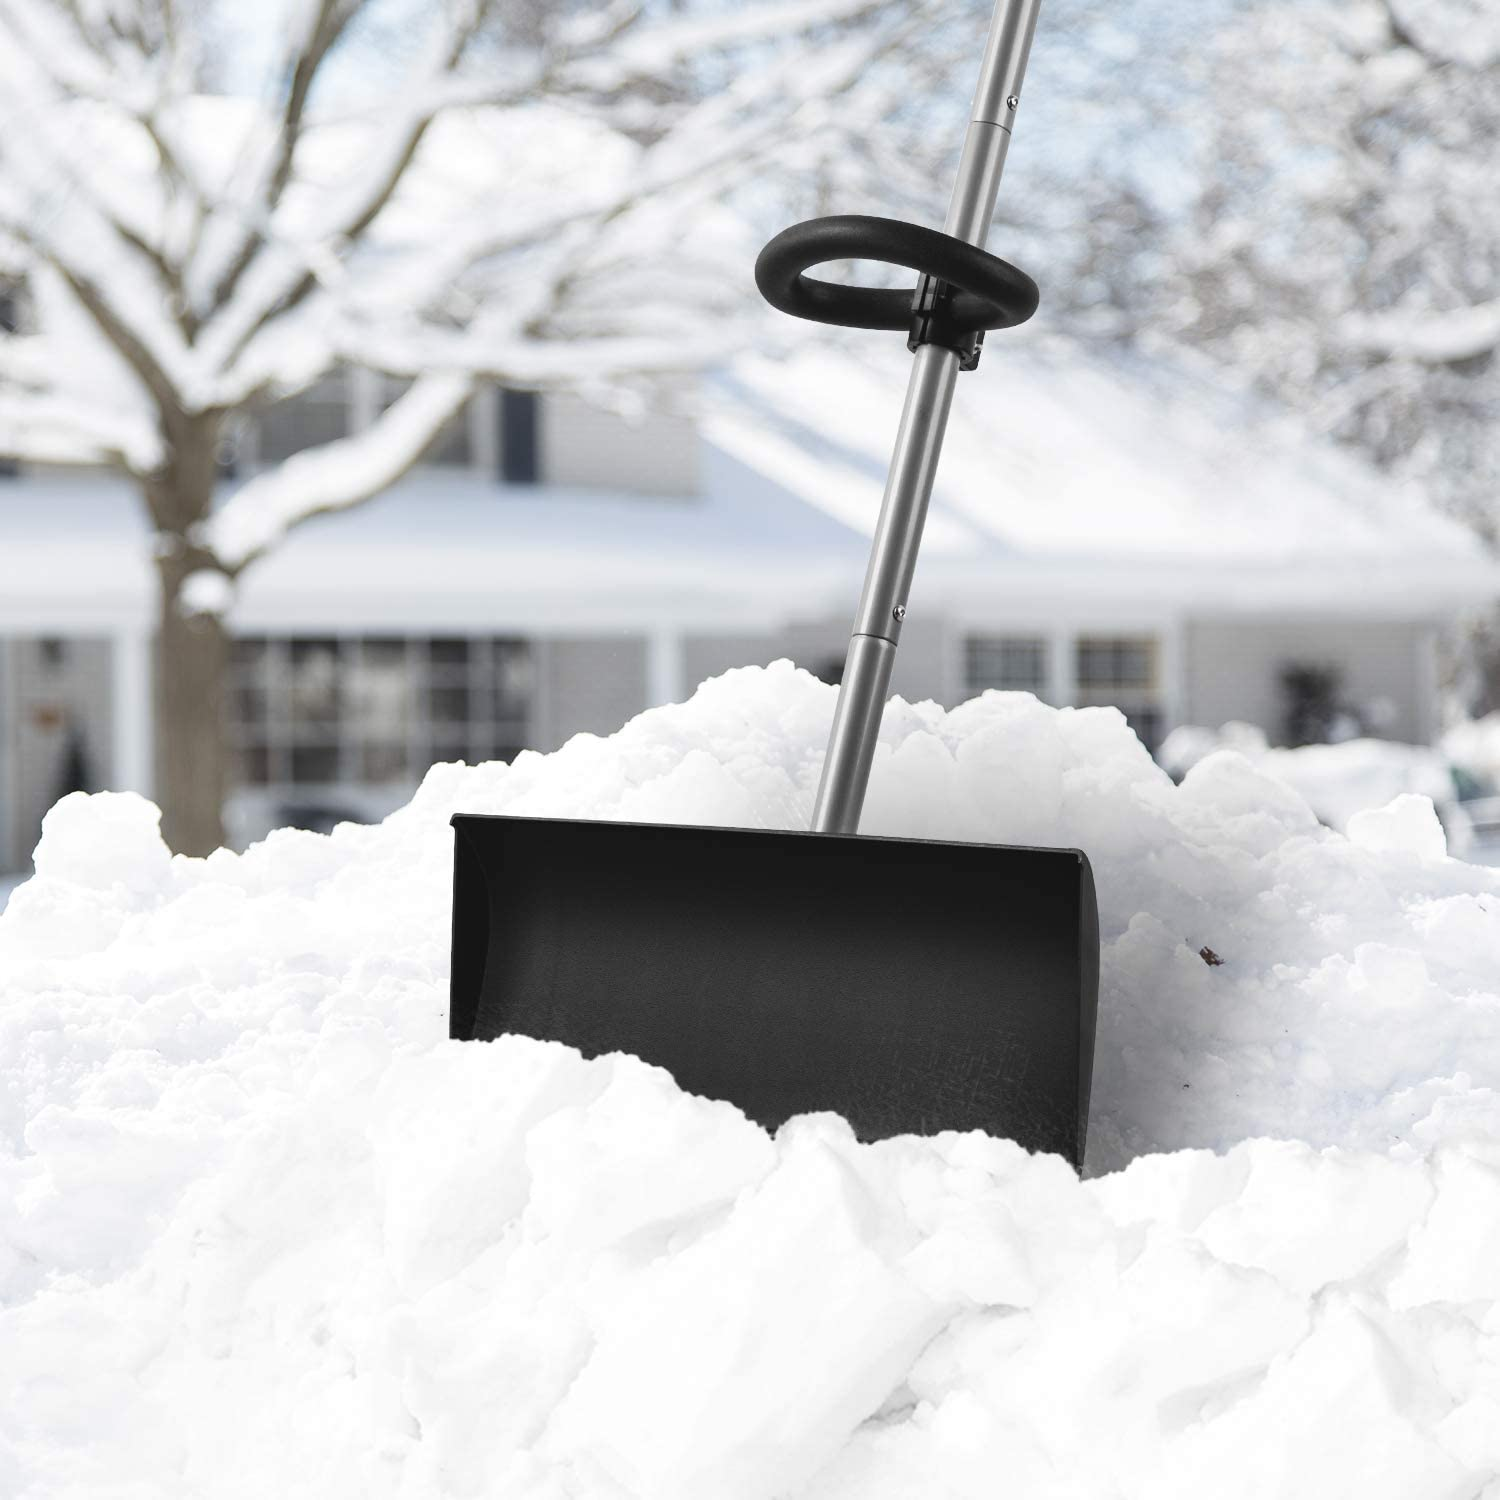 """ORIENTOOLS Snow Shovel with Ergonomic Handle Grips and Strong Blade 20/"""" Blade Strain-Reducing Pusher Perfect for Shoveling or Pushing Snow Soils and Grains."""